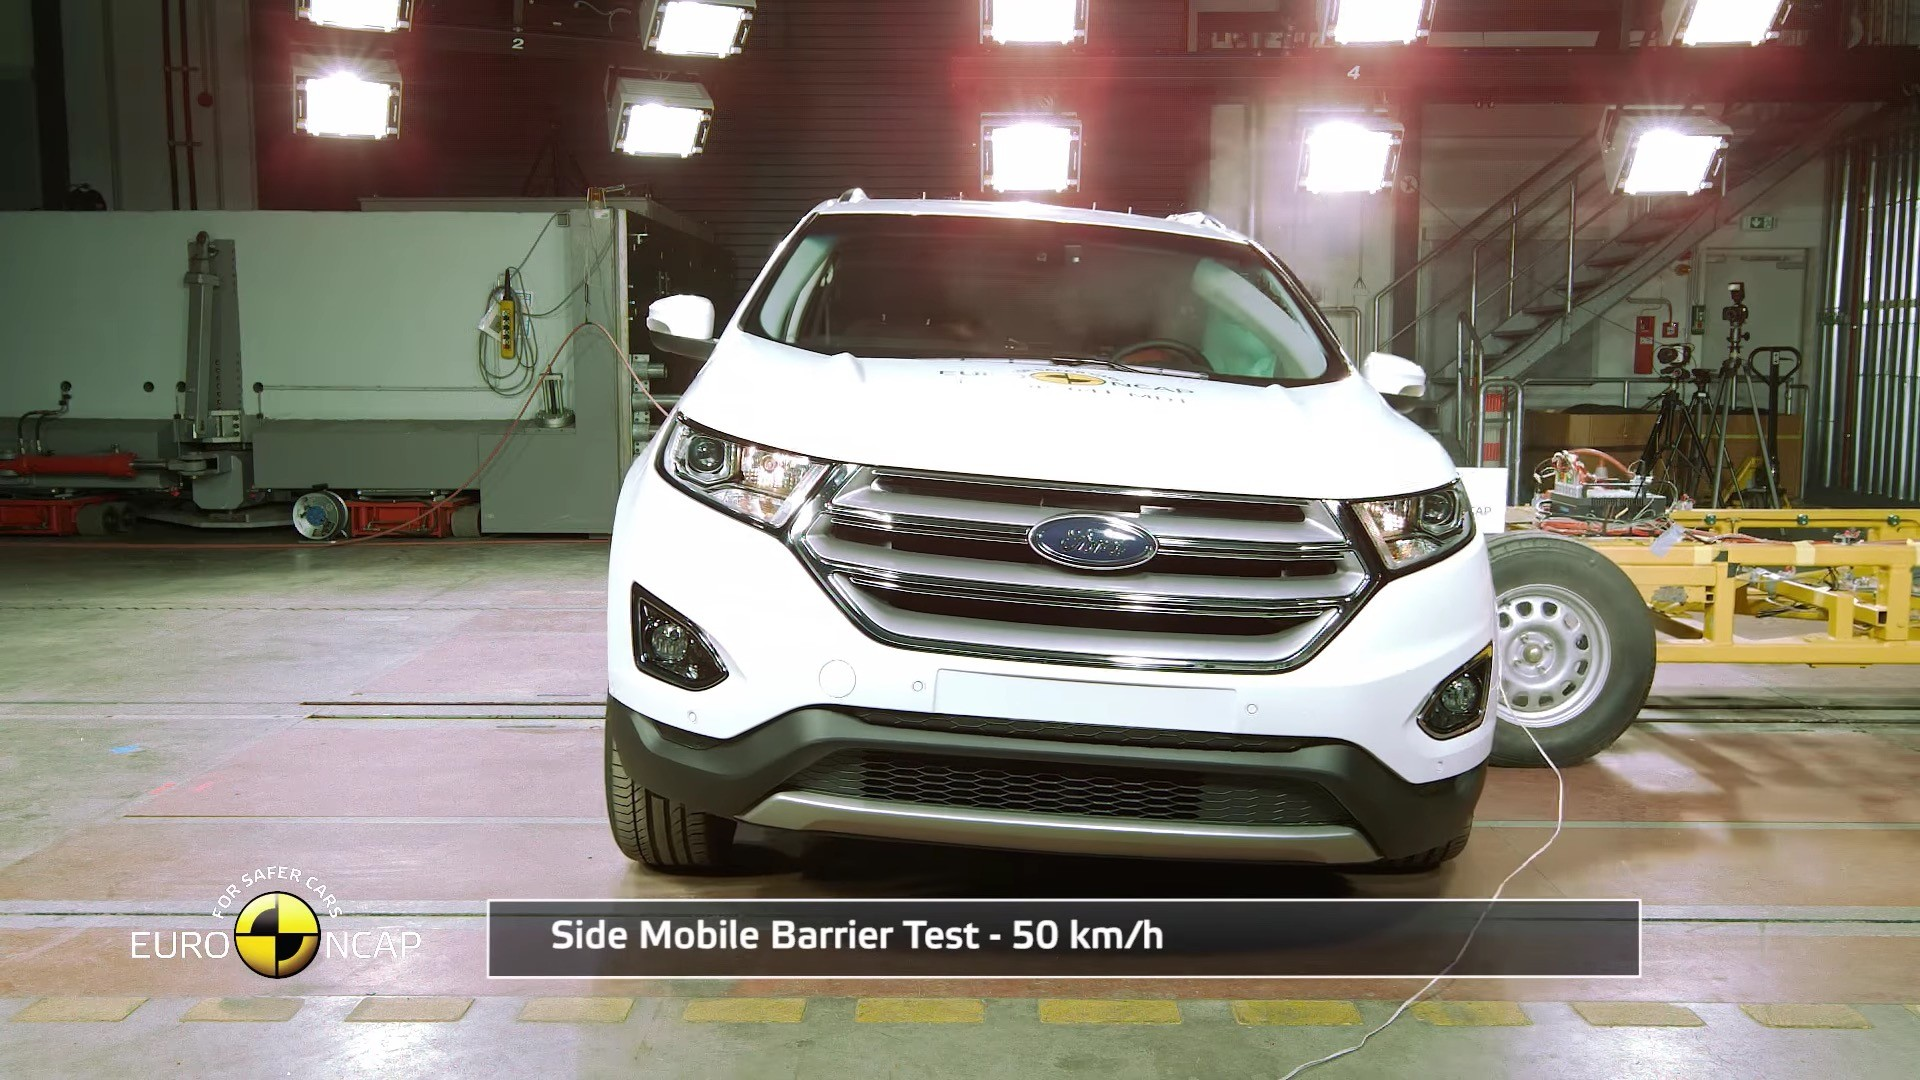 2016 ford edge crash tested by euro ncap awarded 5 stars overall autoevolution. Black Bedroom Furniture Sets. Home Design Ideas